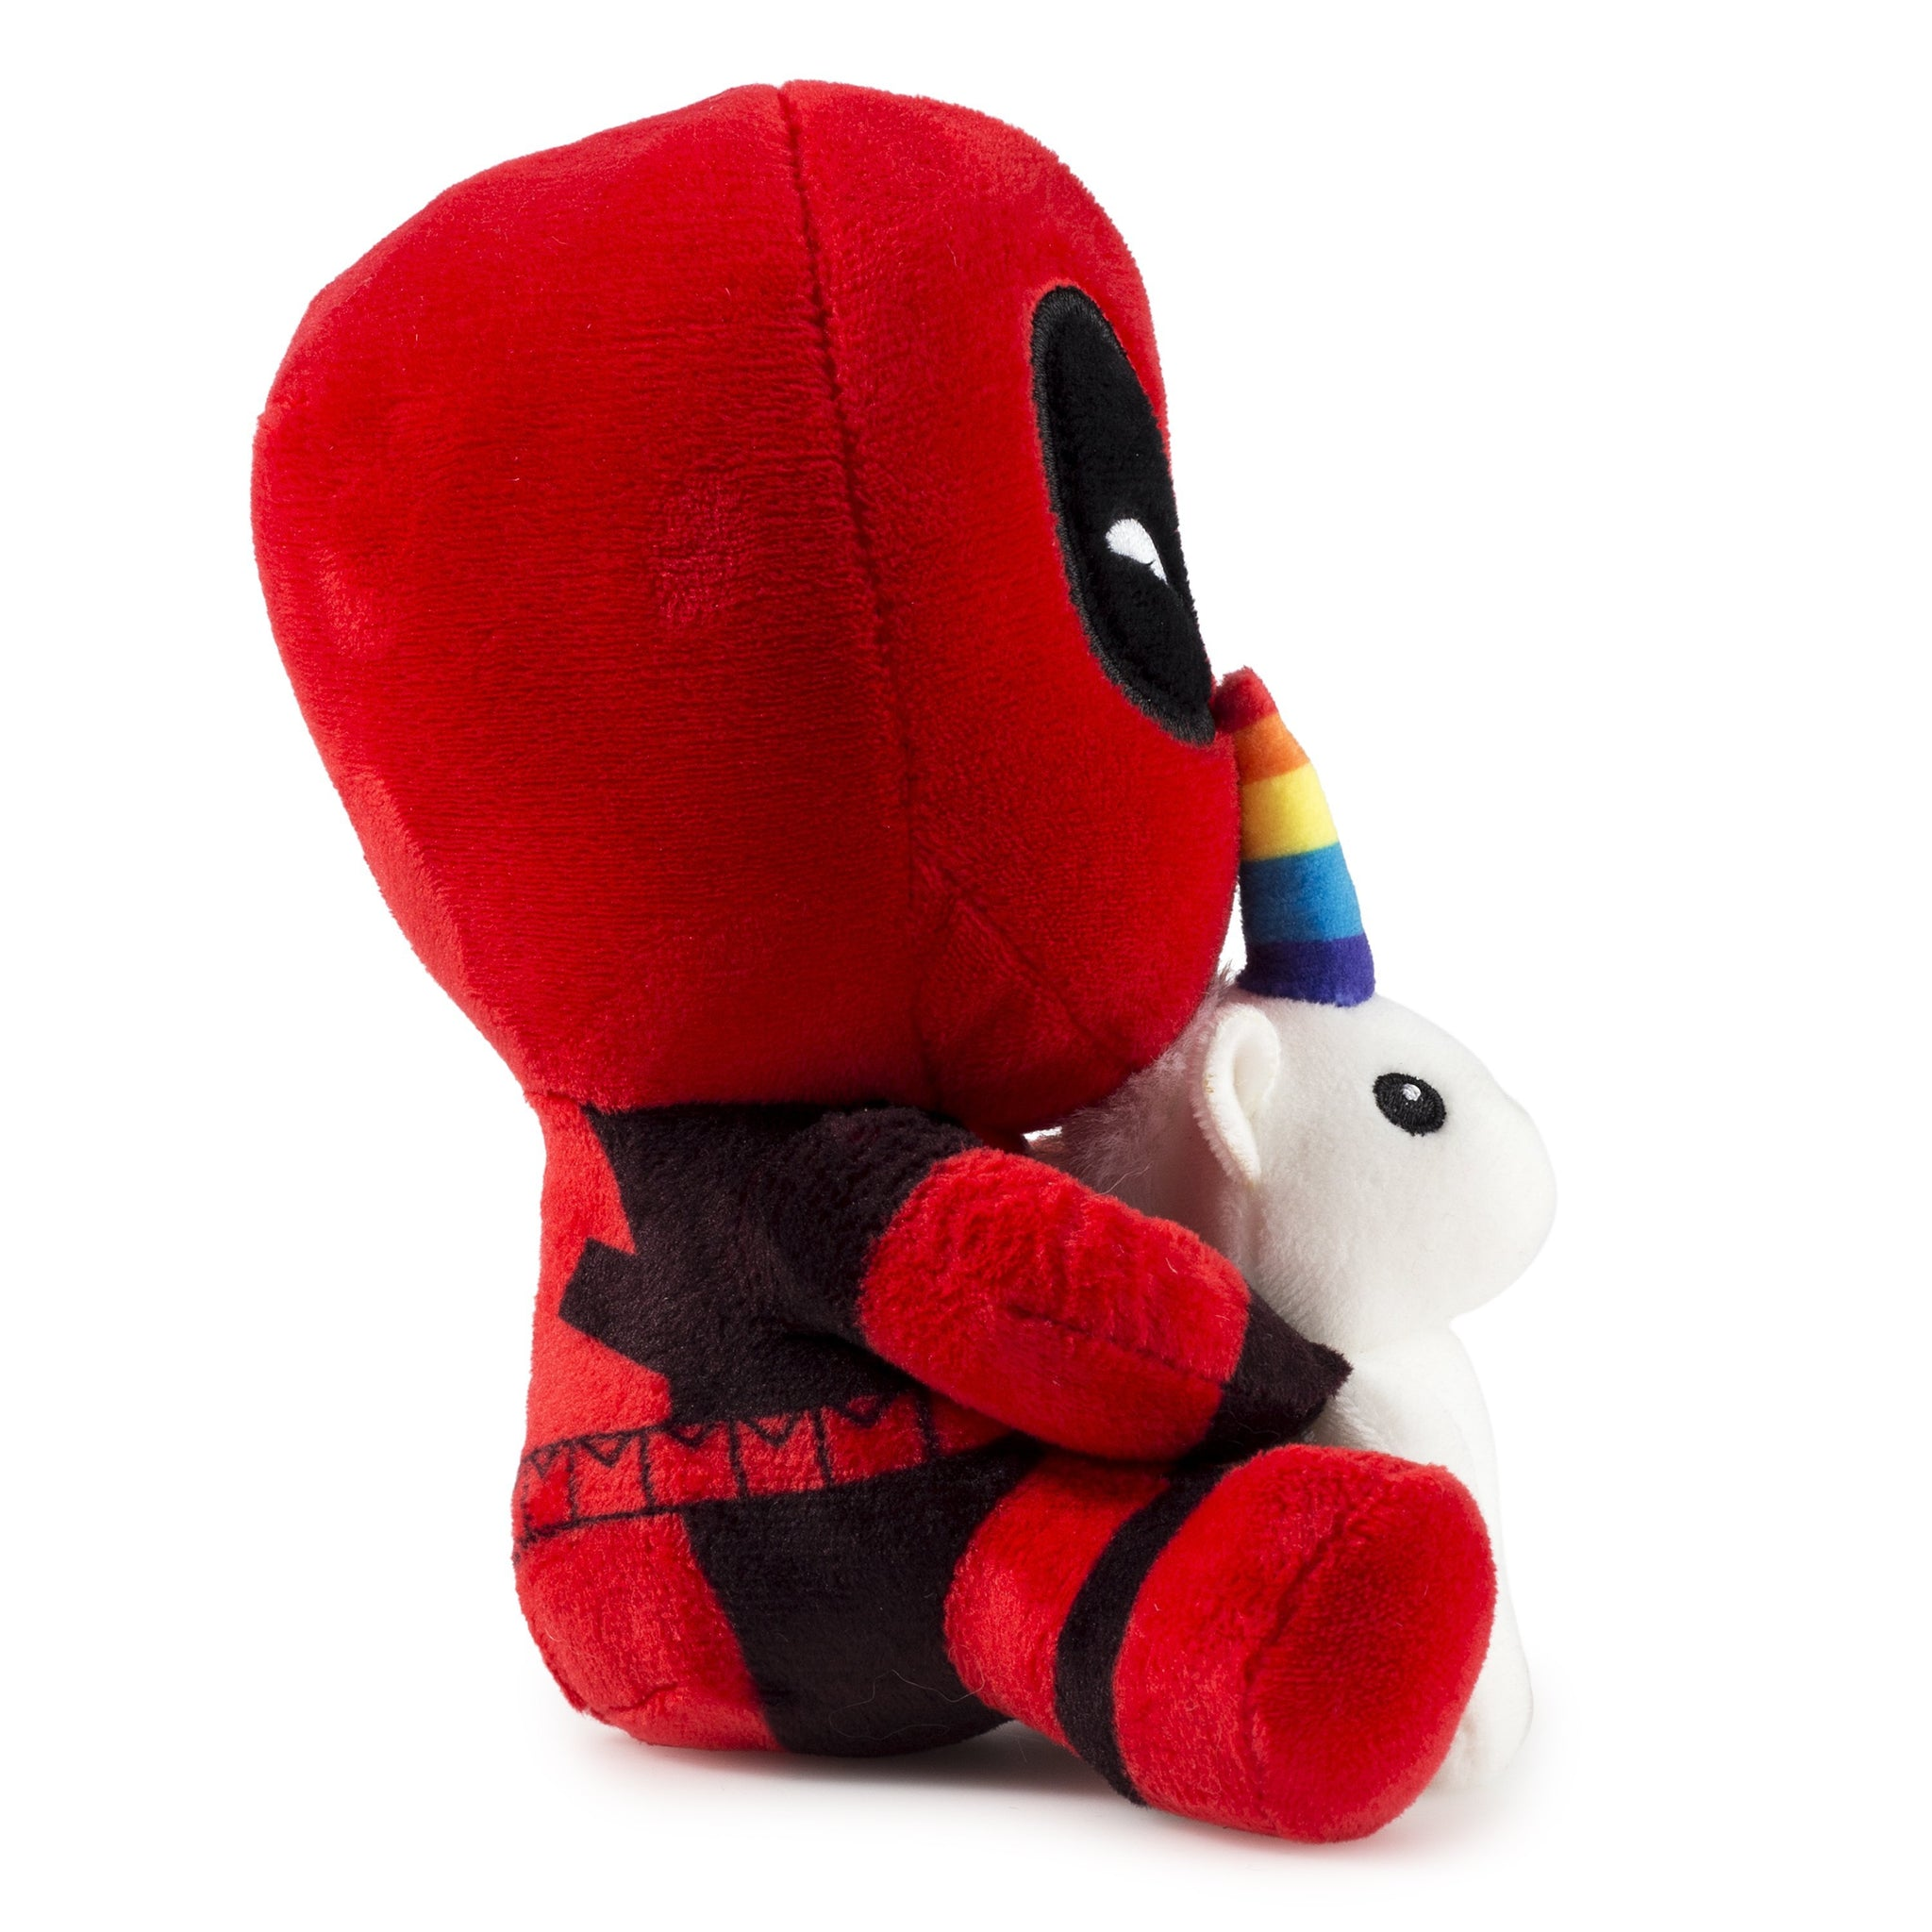 100% Polyester - Marvel Deadpool Riding A Unicorn Plush